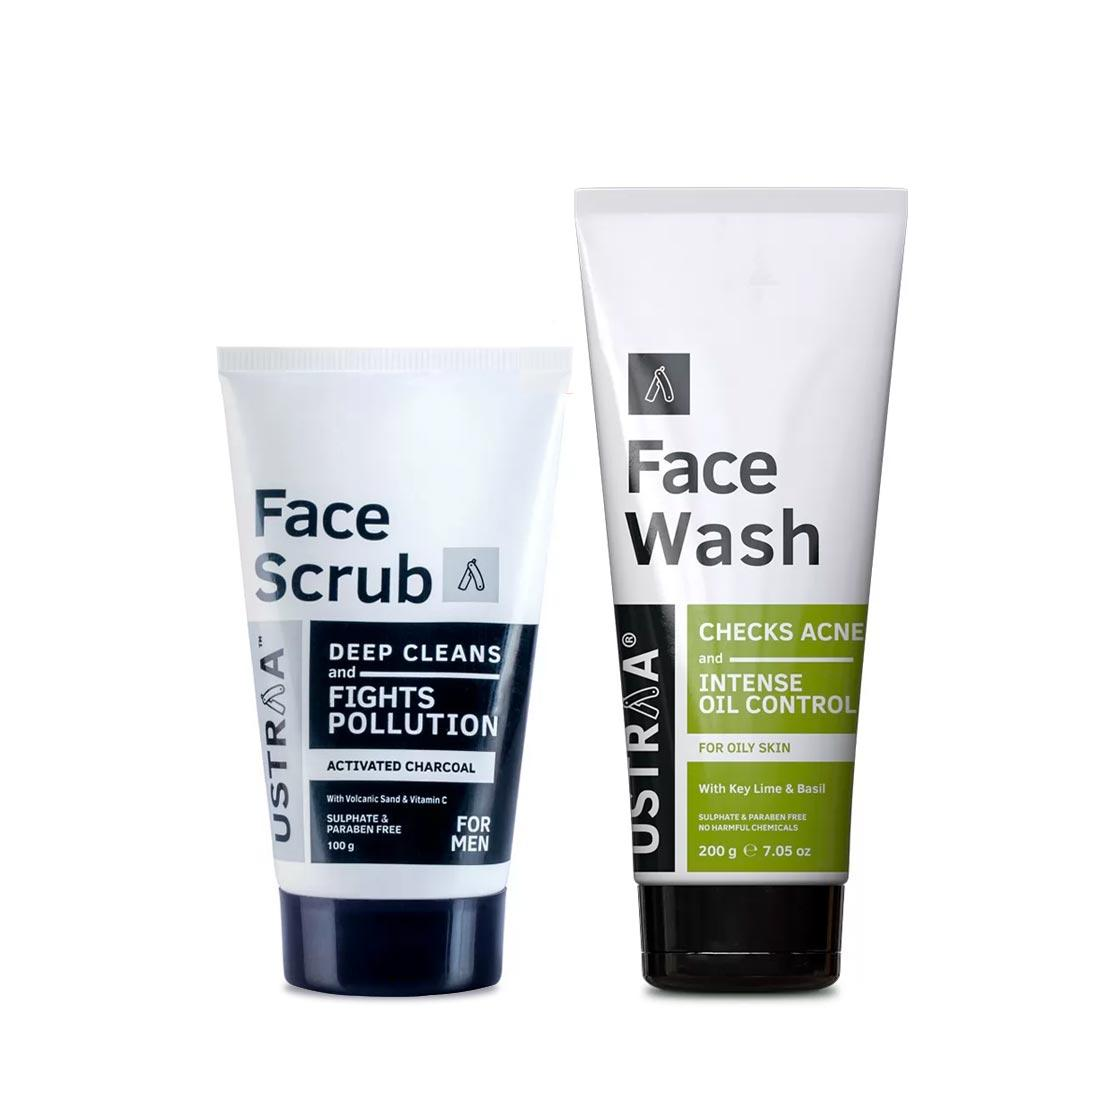 Activated Charcoal Face Scrub & Face Wash for Oily Skin